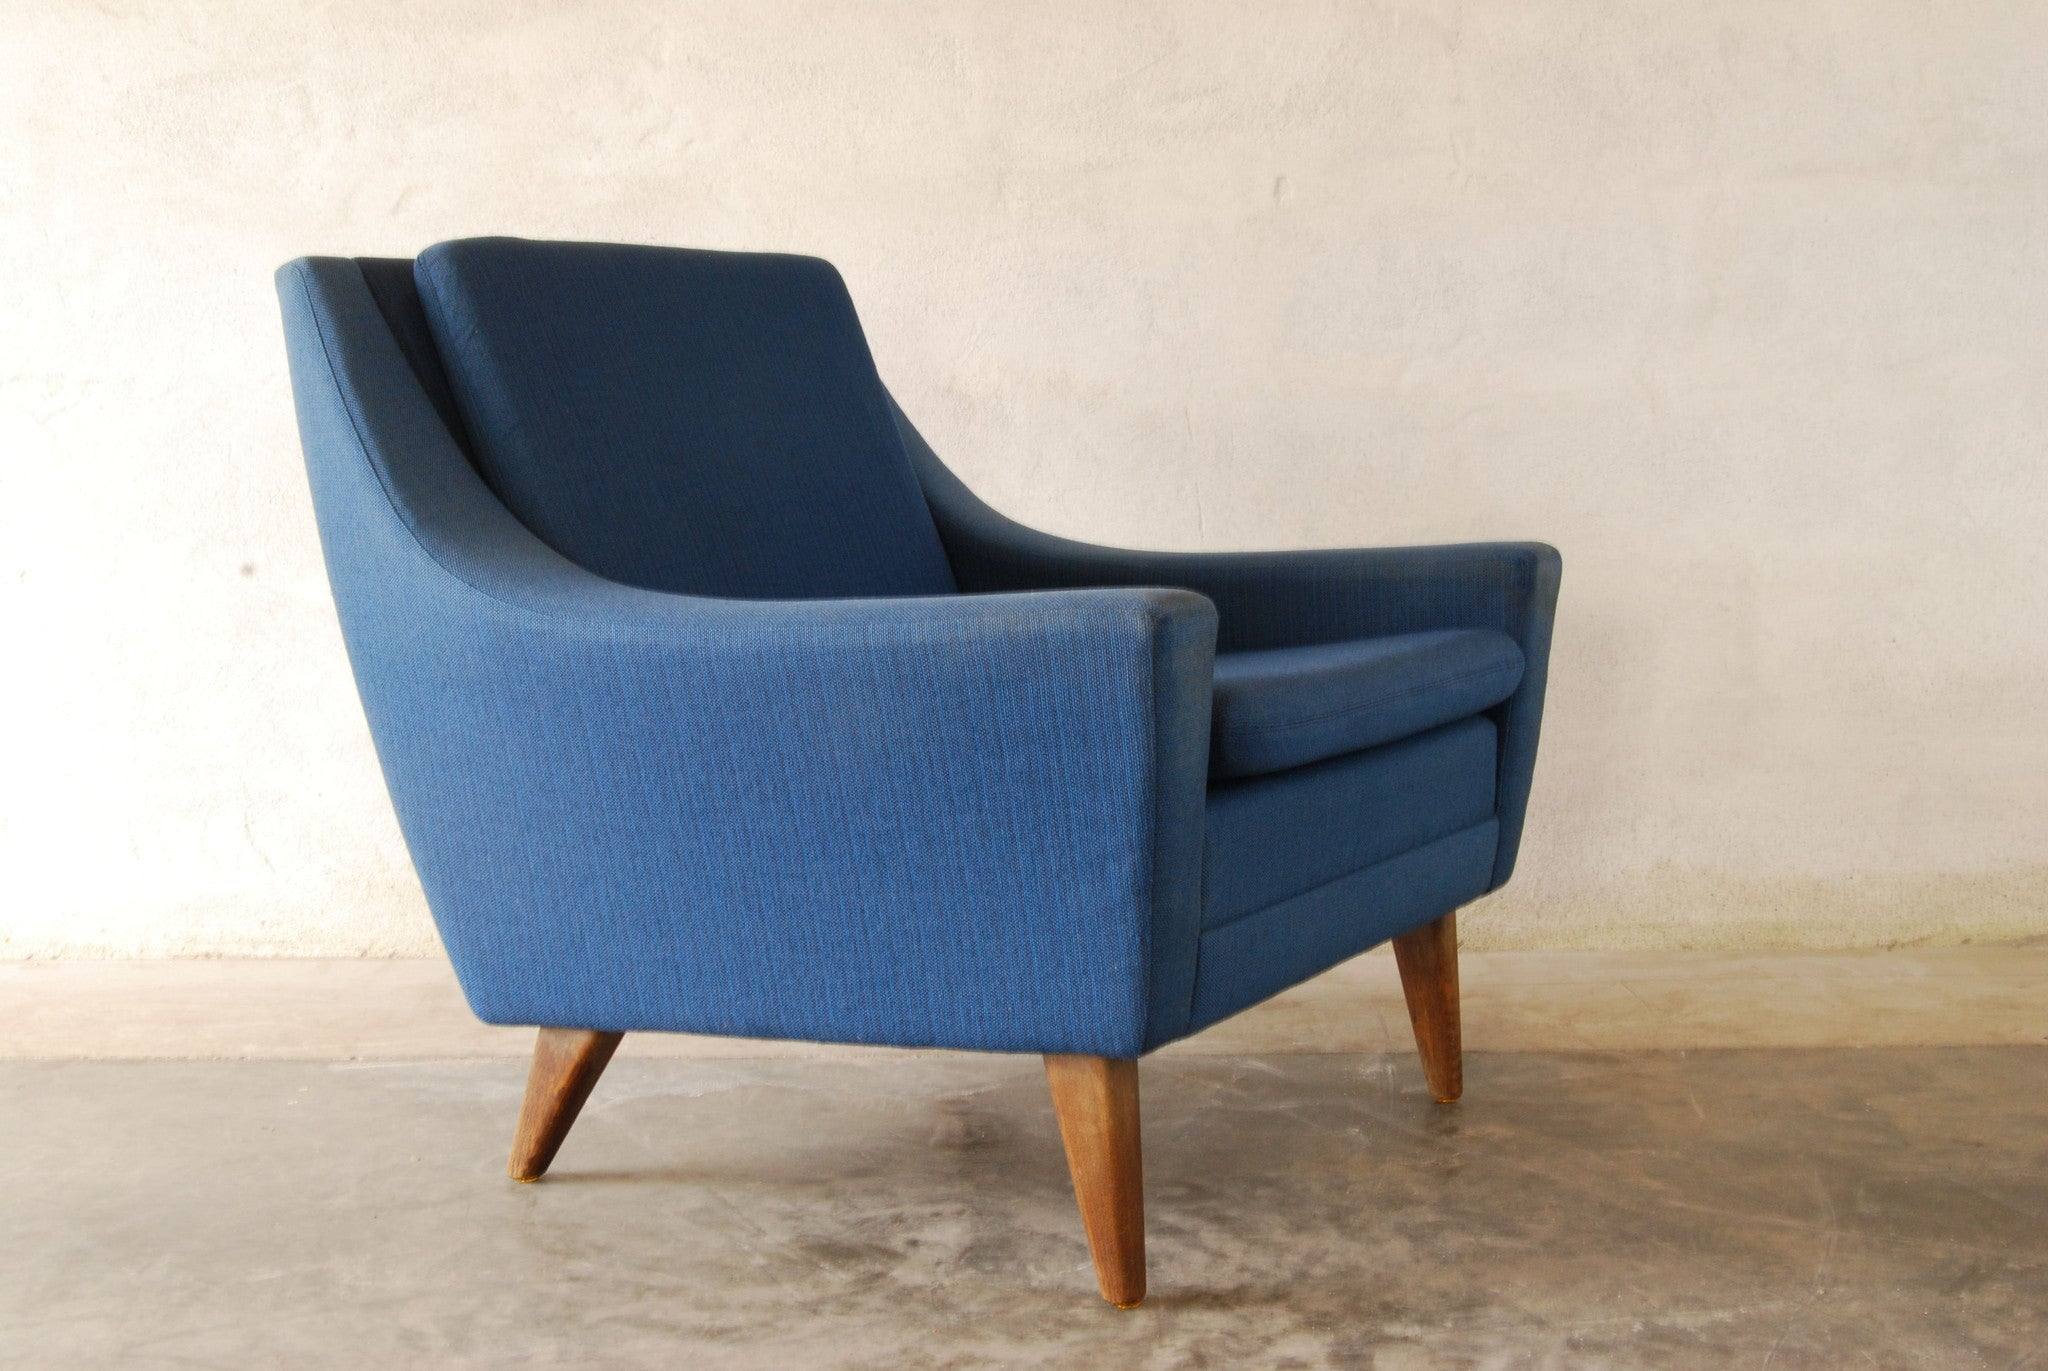 Lounge chair by DUX